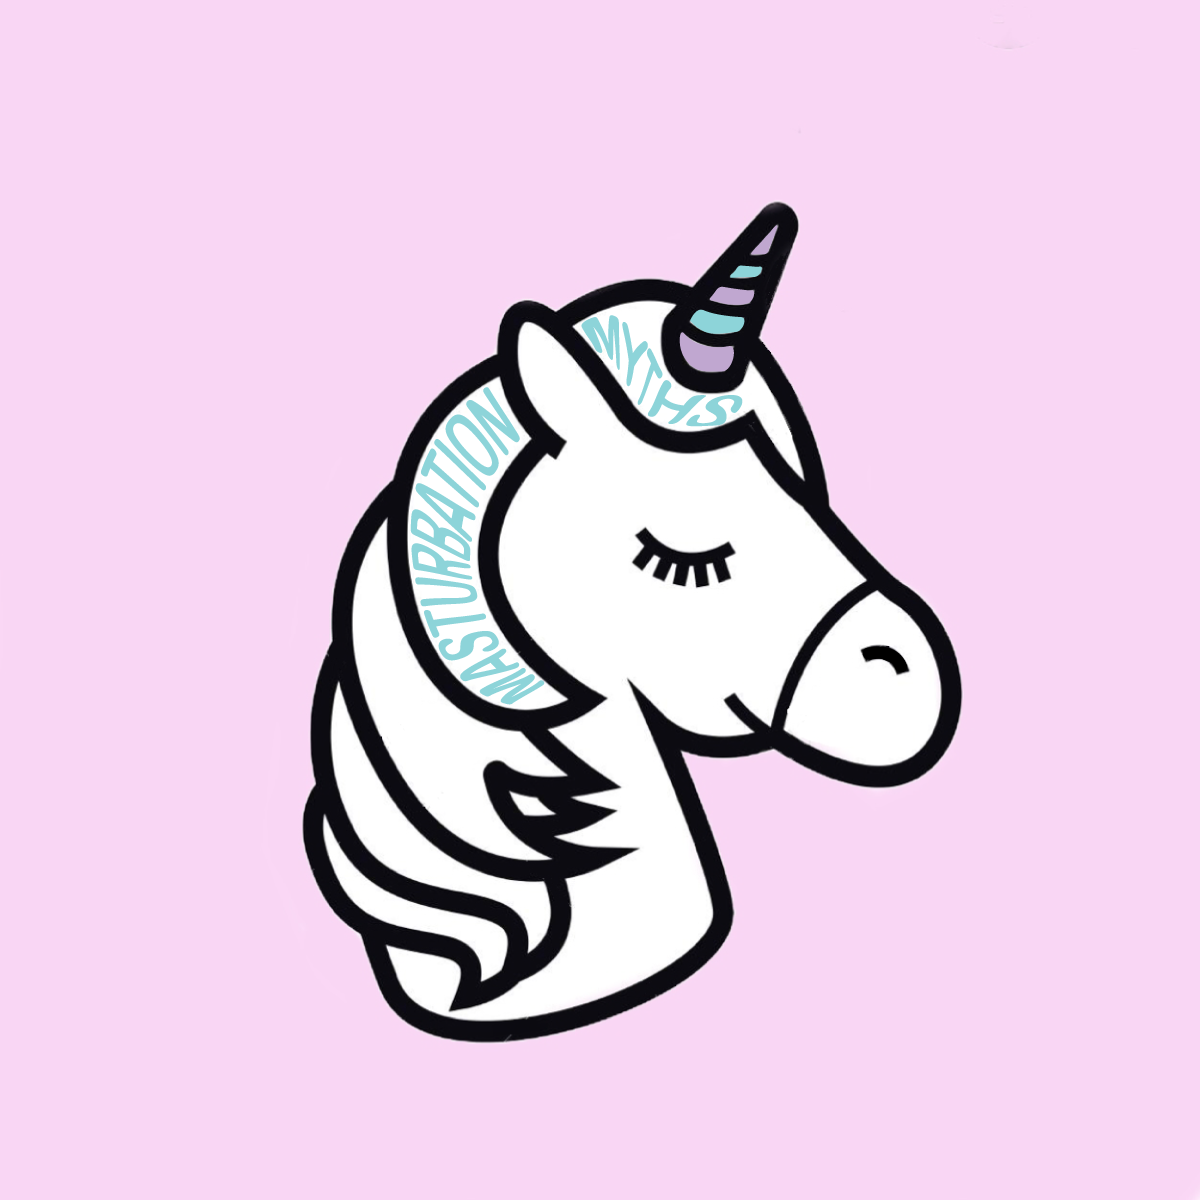 6 masturbation myths that must be destroyed (featuring the image of a unicorn)